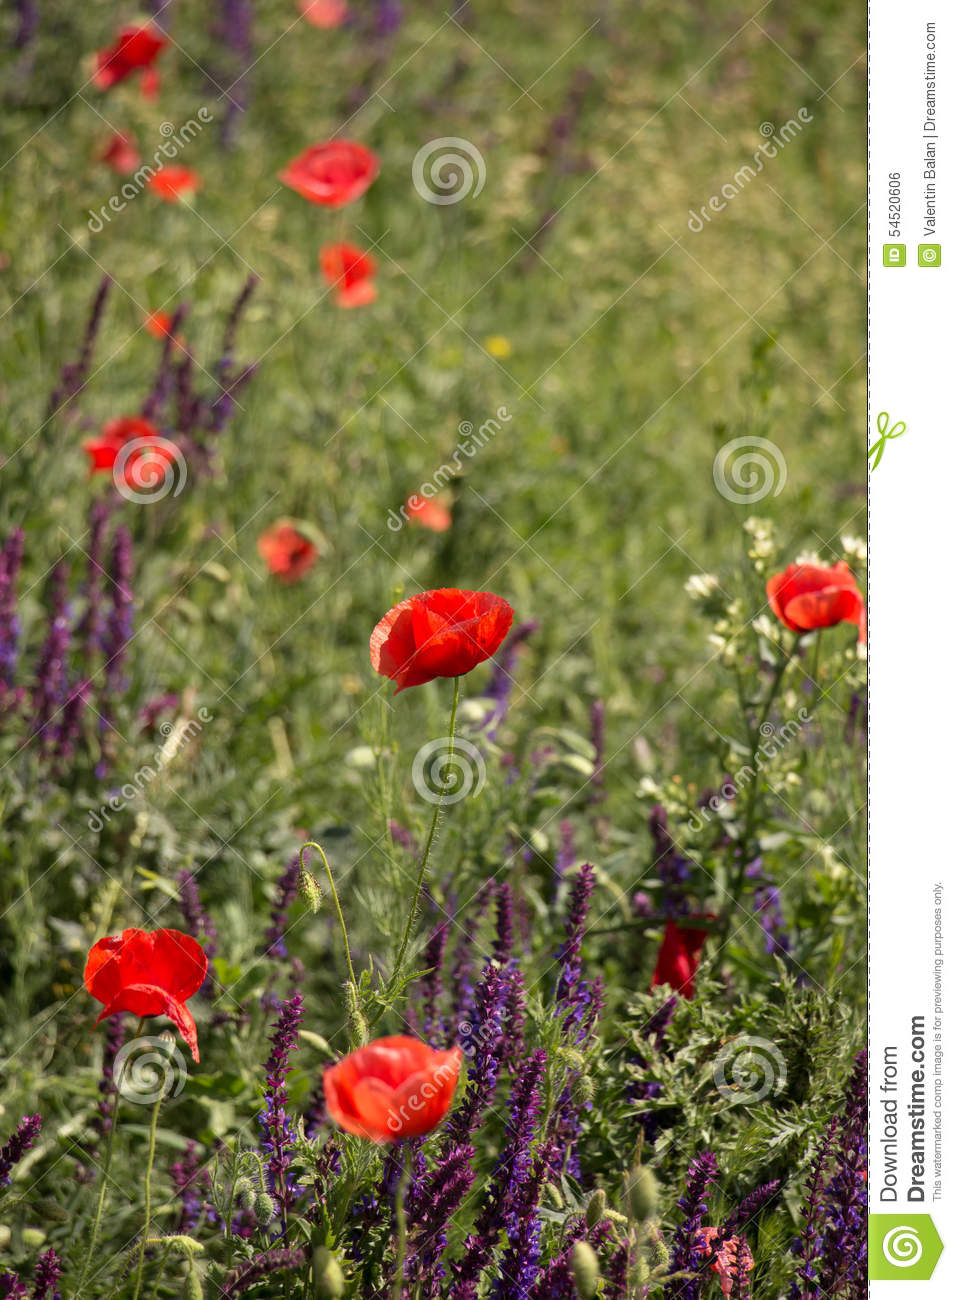 Wild Poppies Flowers Stock Photo Image Of Green Outdoors 54520606